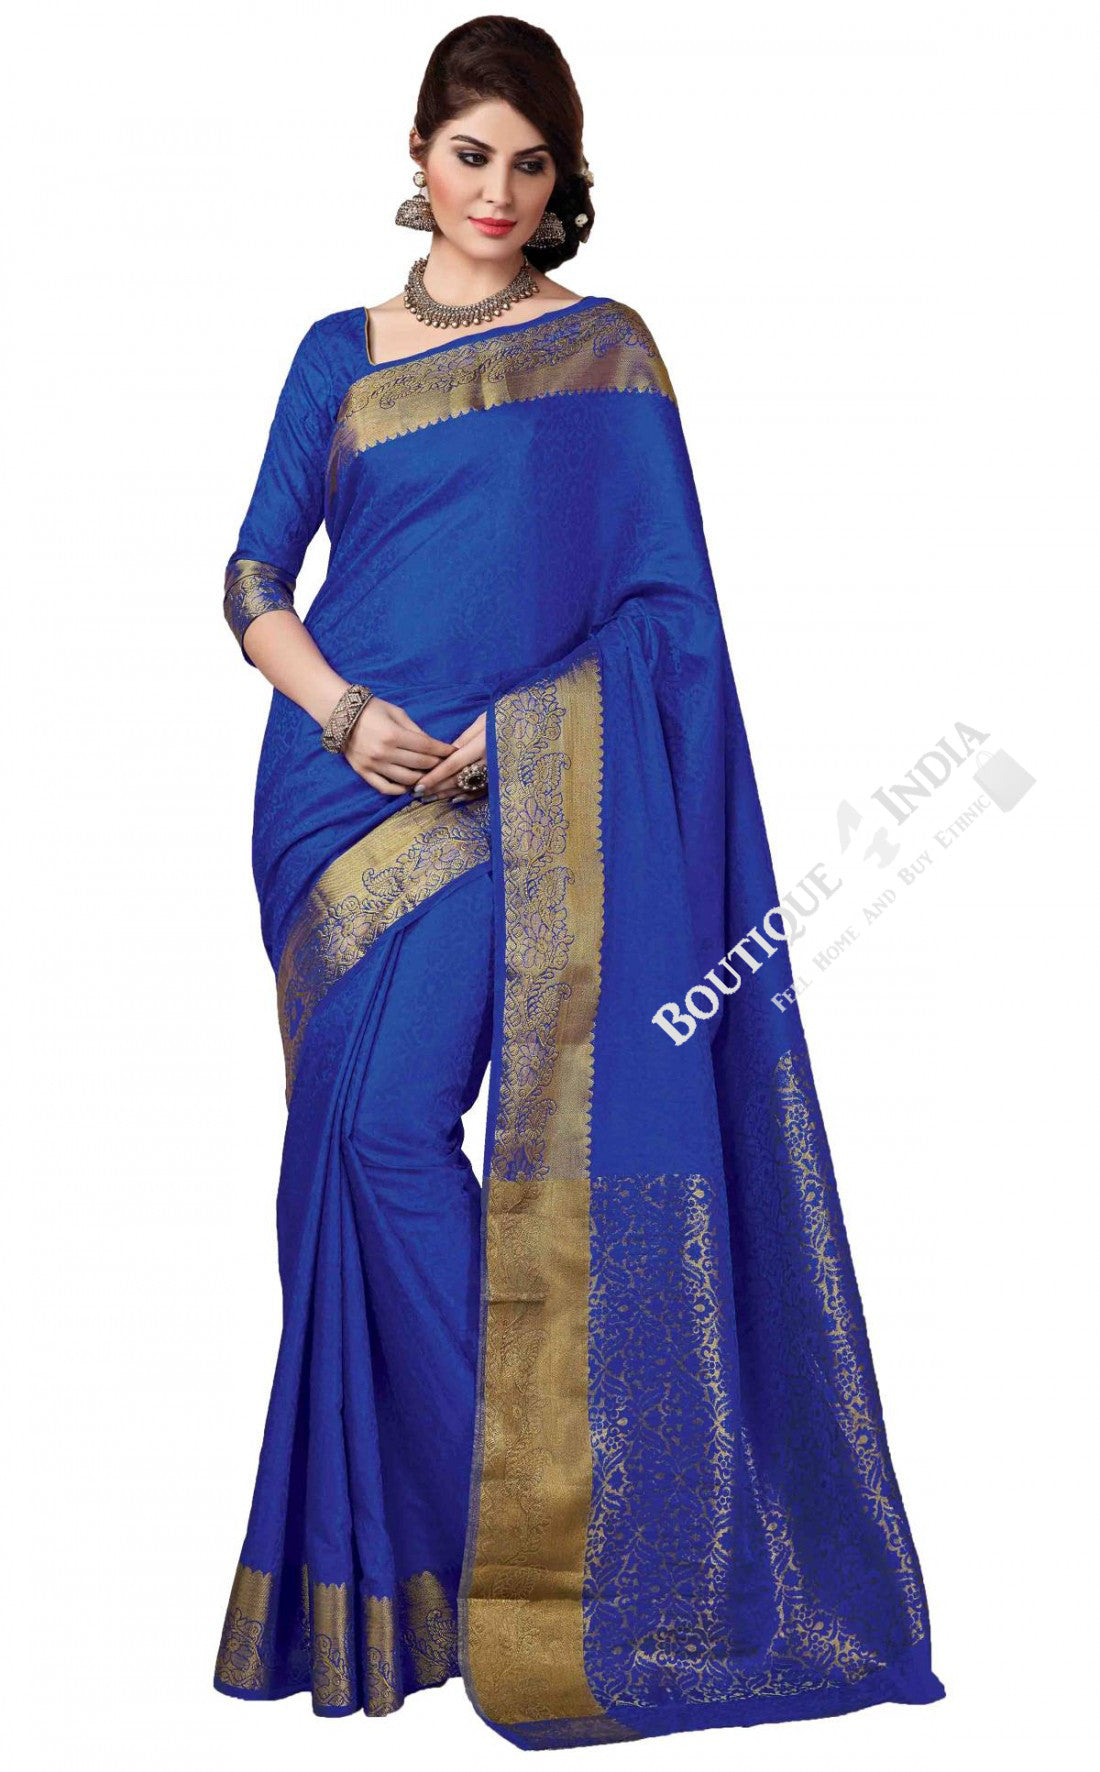 Jacquard Silk Saree in Blue and Golden - Boutique4India Inc.